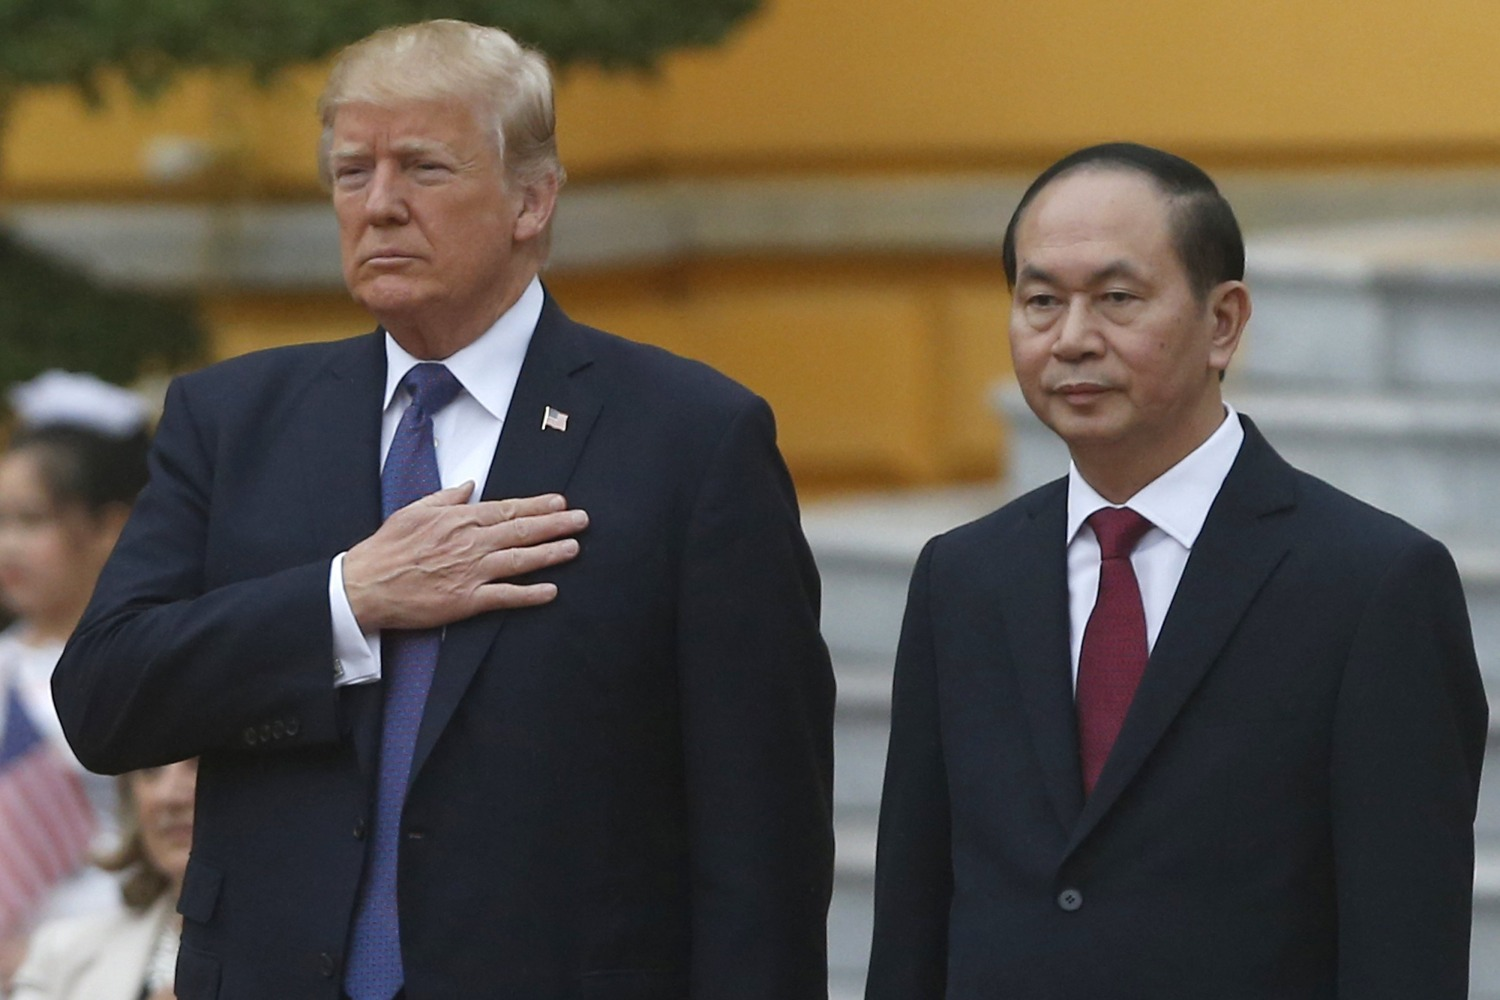 Trump offers to mediate in South China Sea dispute